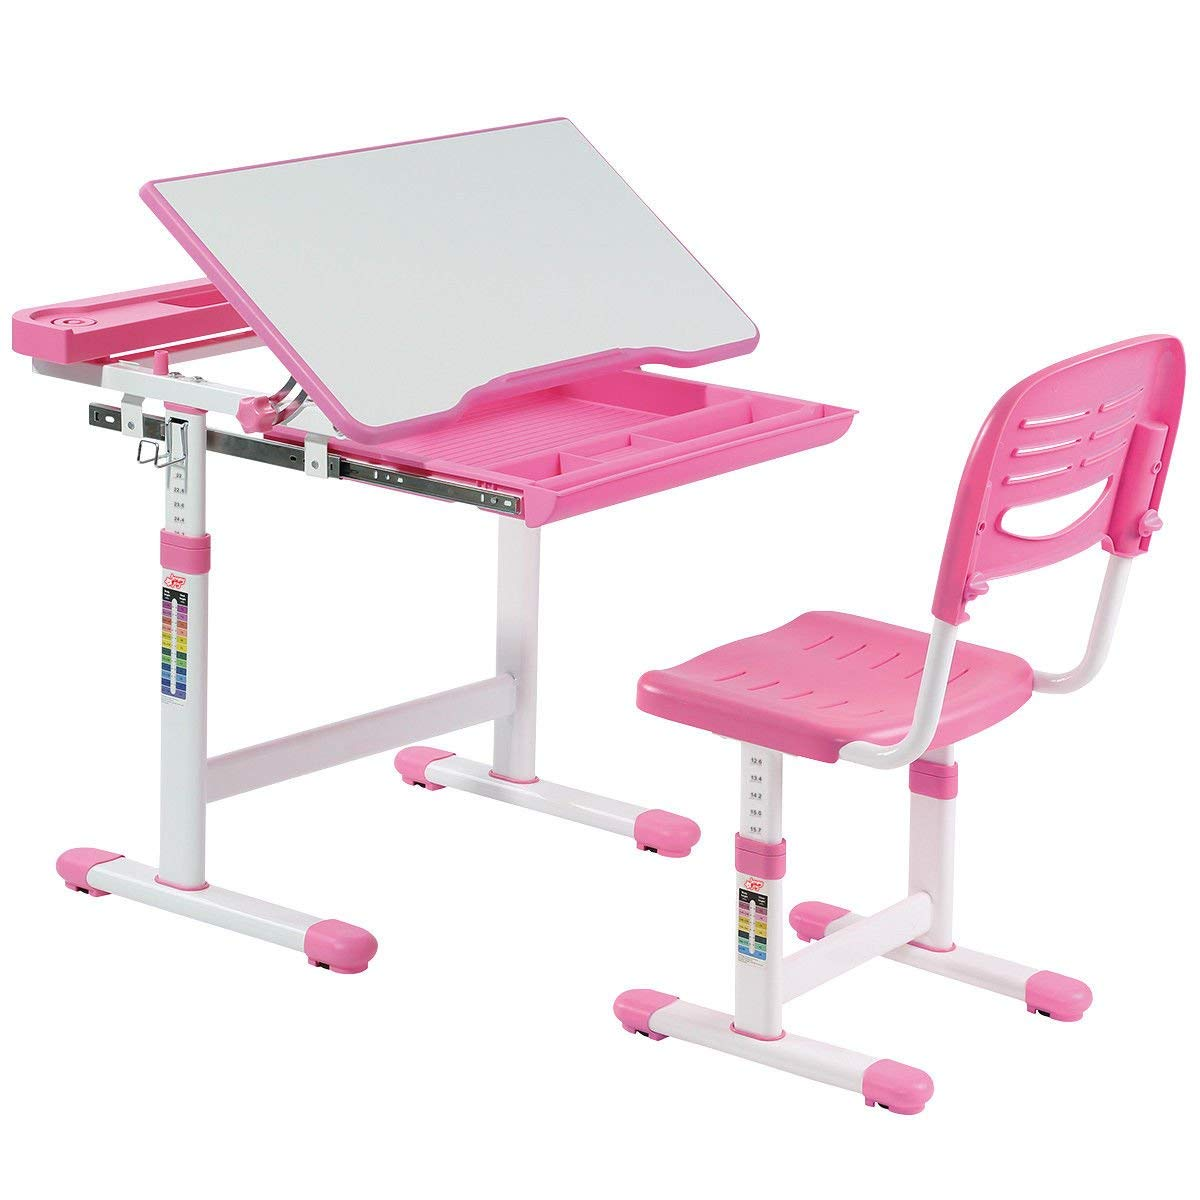 Fabulous Cheap Desk Chair Pink Find Desk Chair Pink Deals On Line At Creativecarmelina Interior Chair Design Creativecarmelinacom